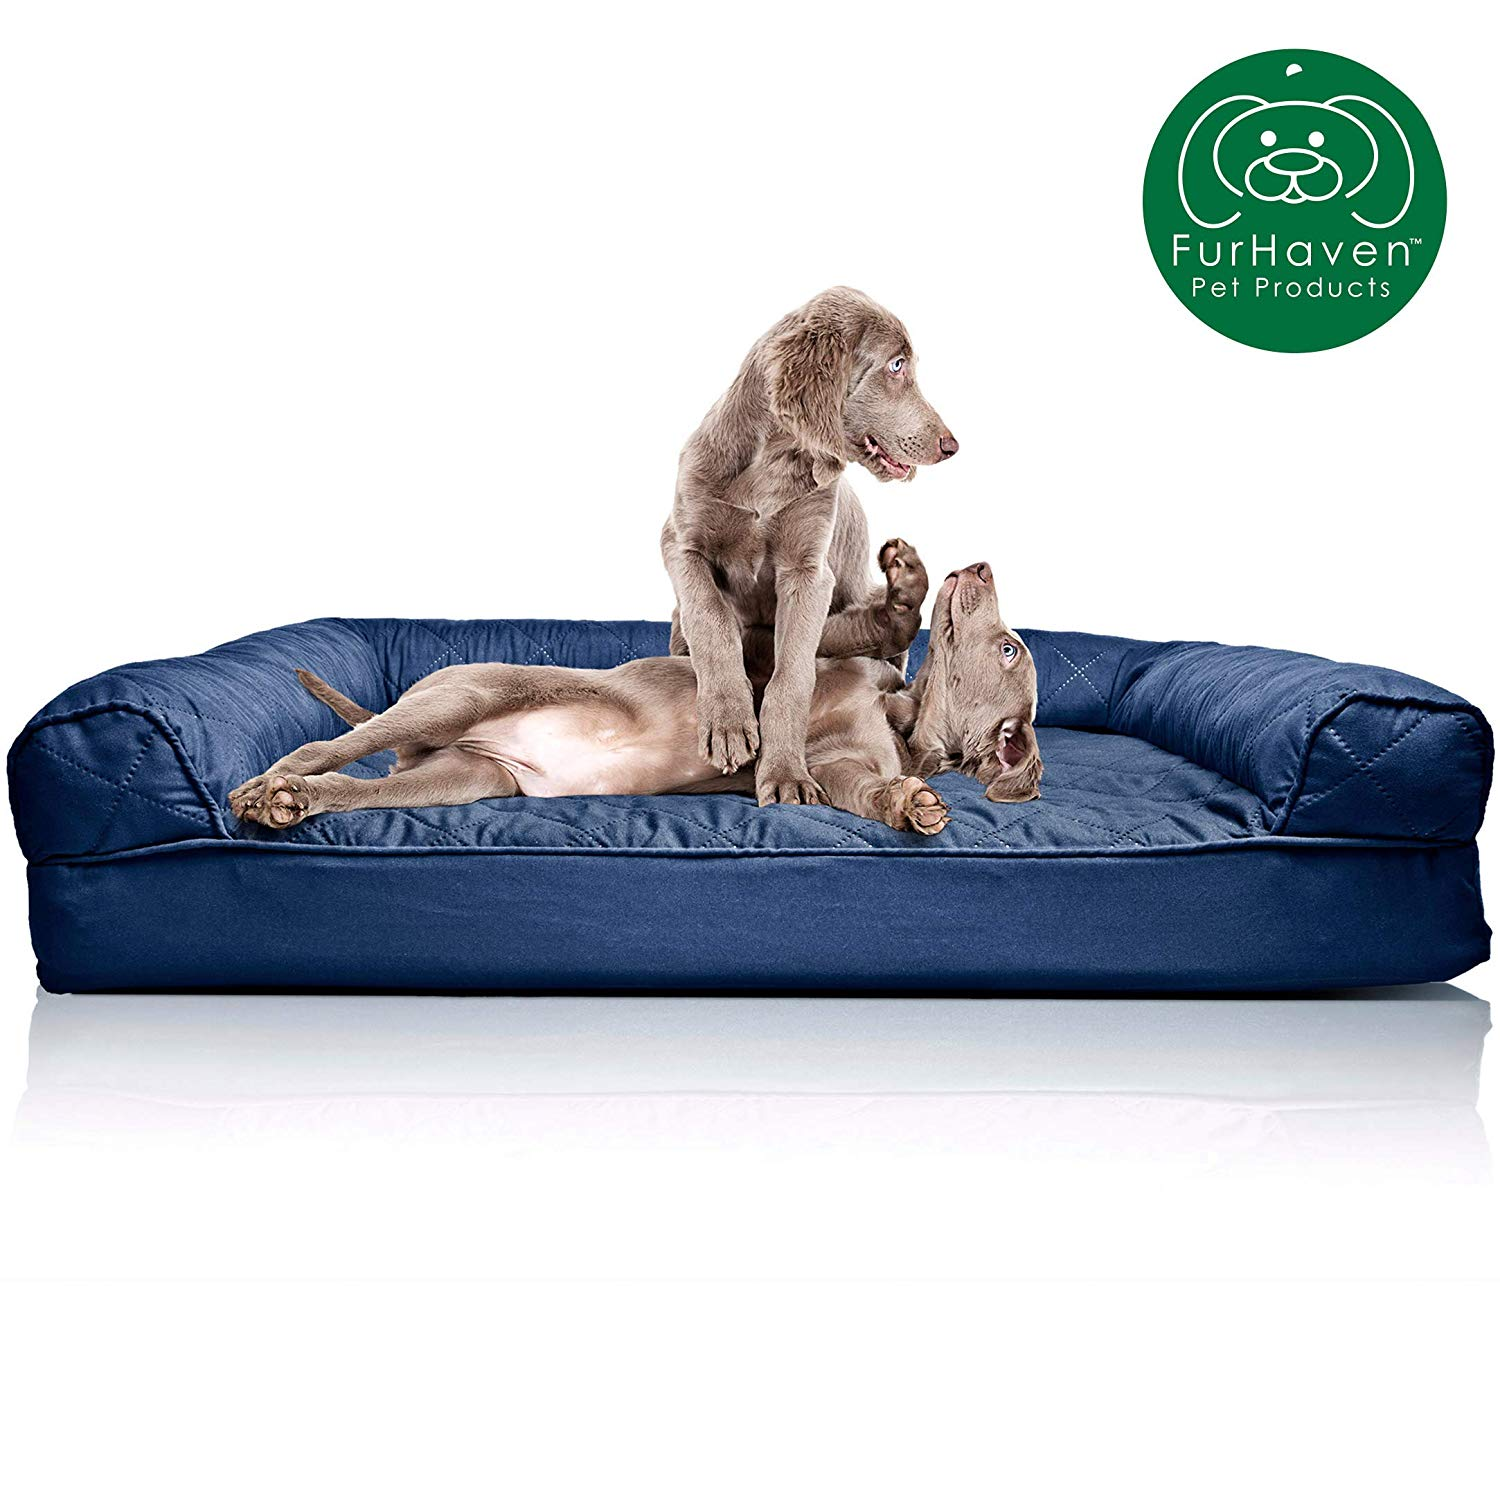 Terrific Details About Furhaven Pet Dog Bed Orthopedic Quilted Sofa Style Couch Pet Bed For Dogs And Bralicious Painted Fabric Chair Ideas Braliciousco